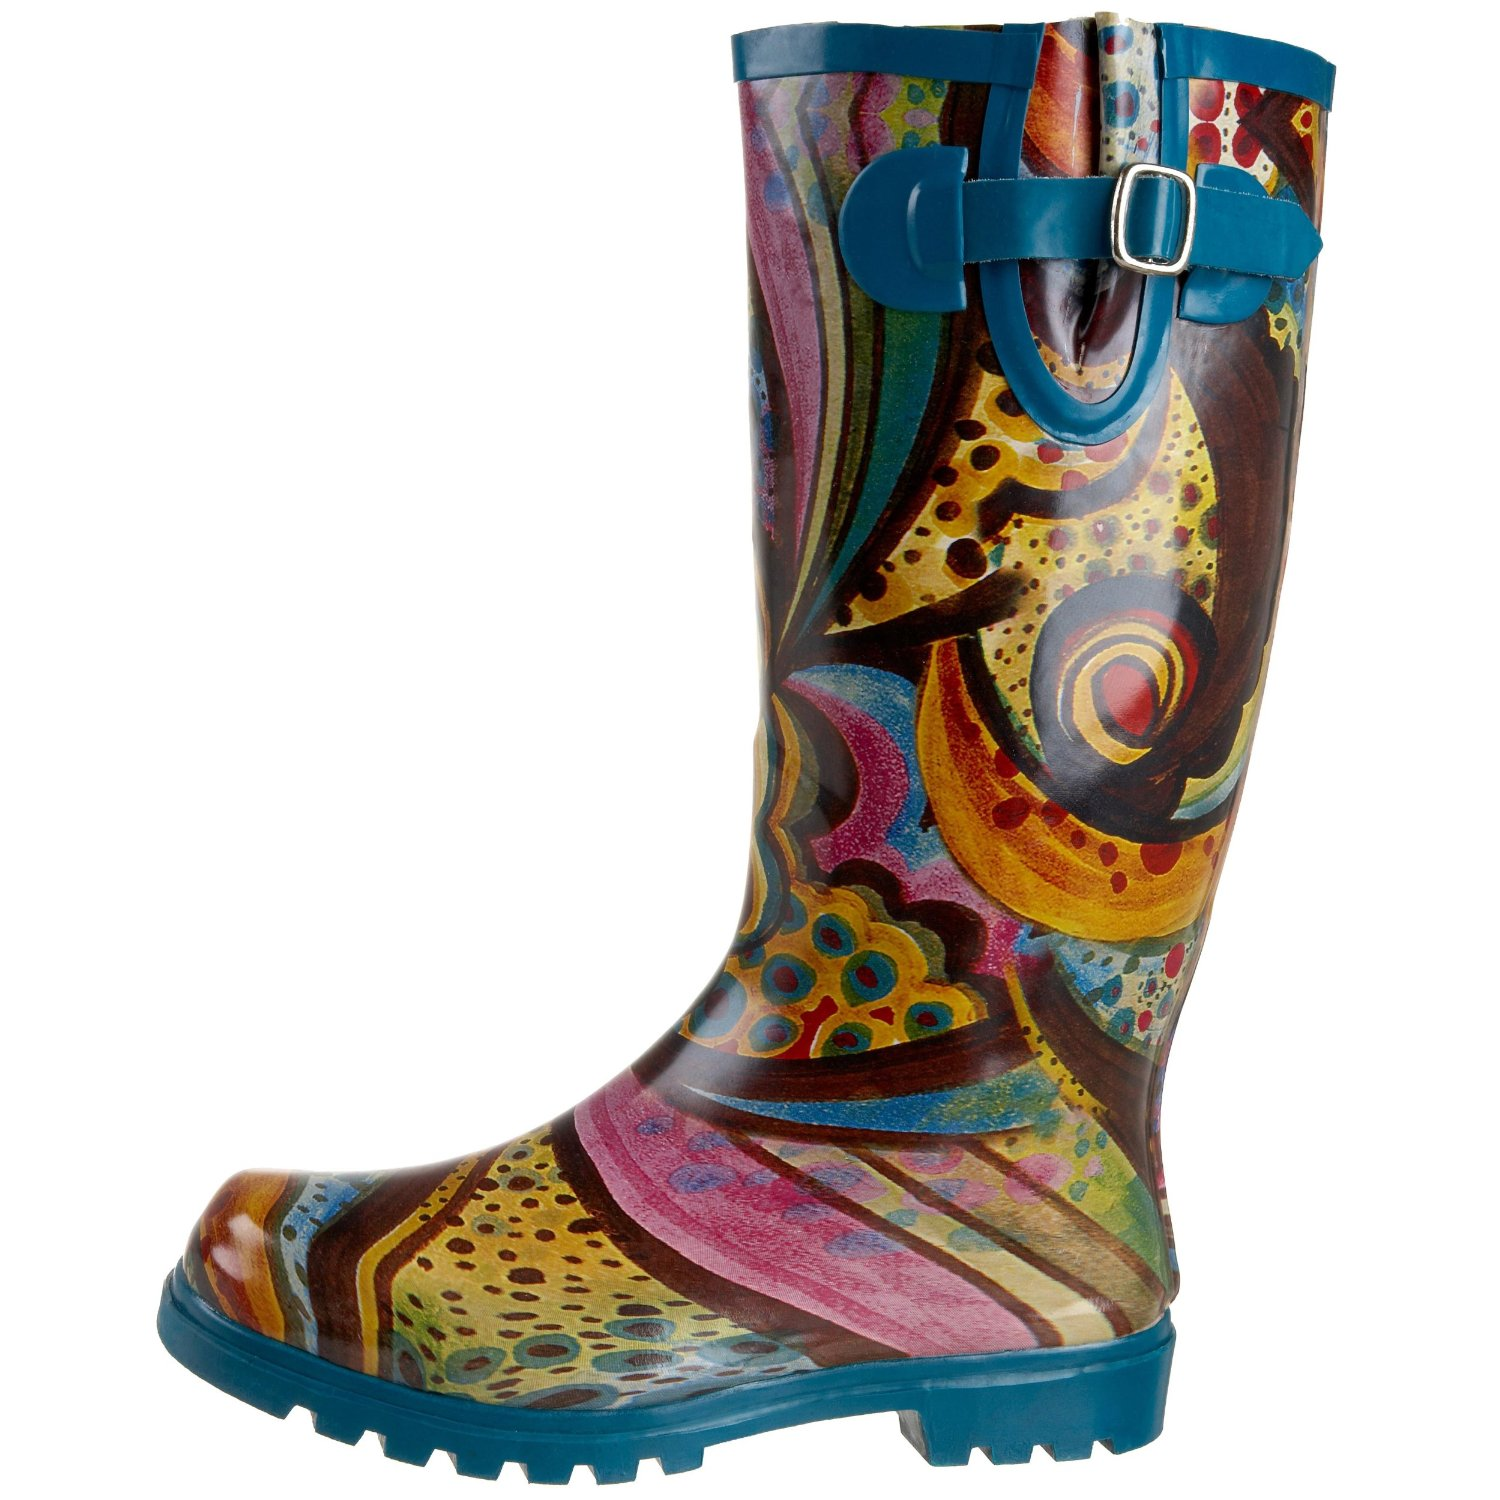 Colorful Rain Boots FRbKunKq